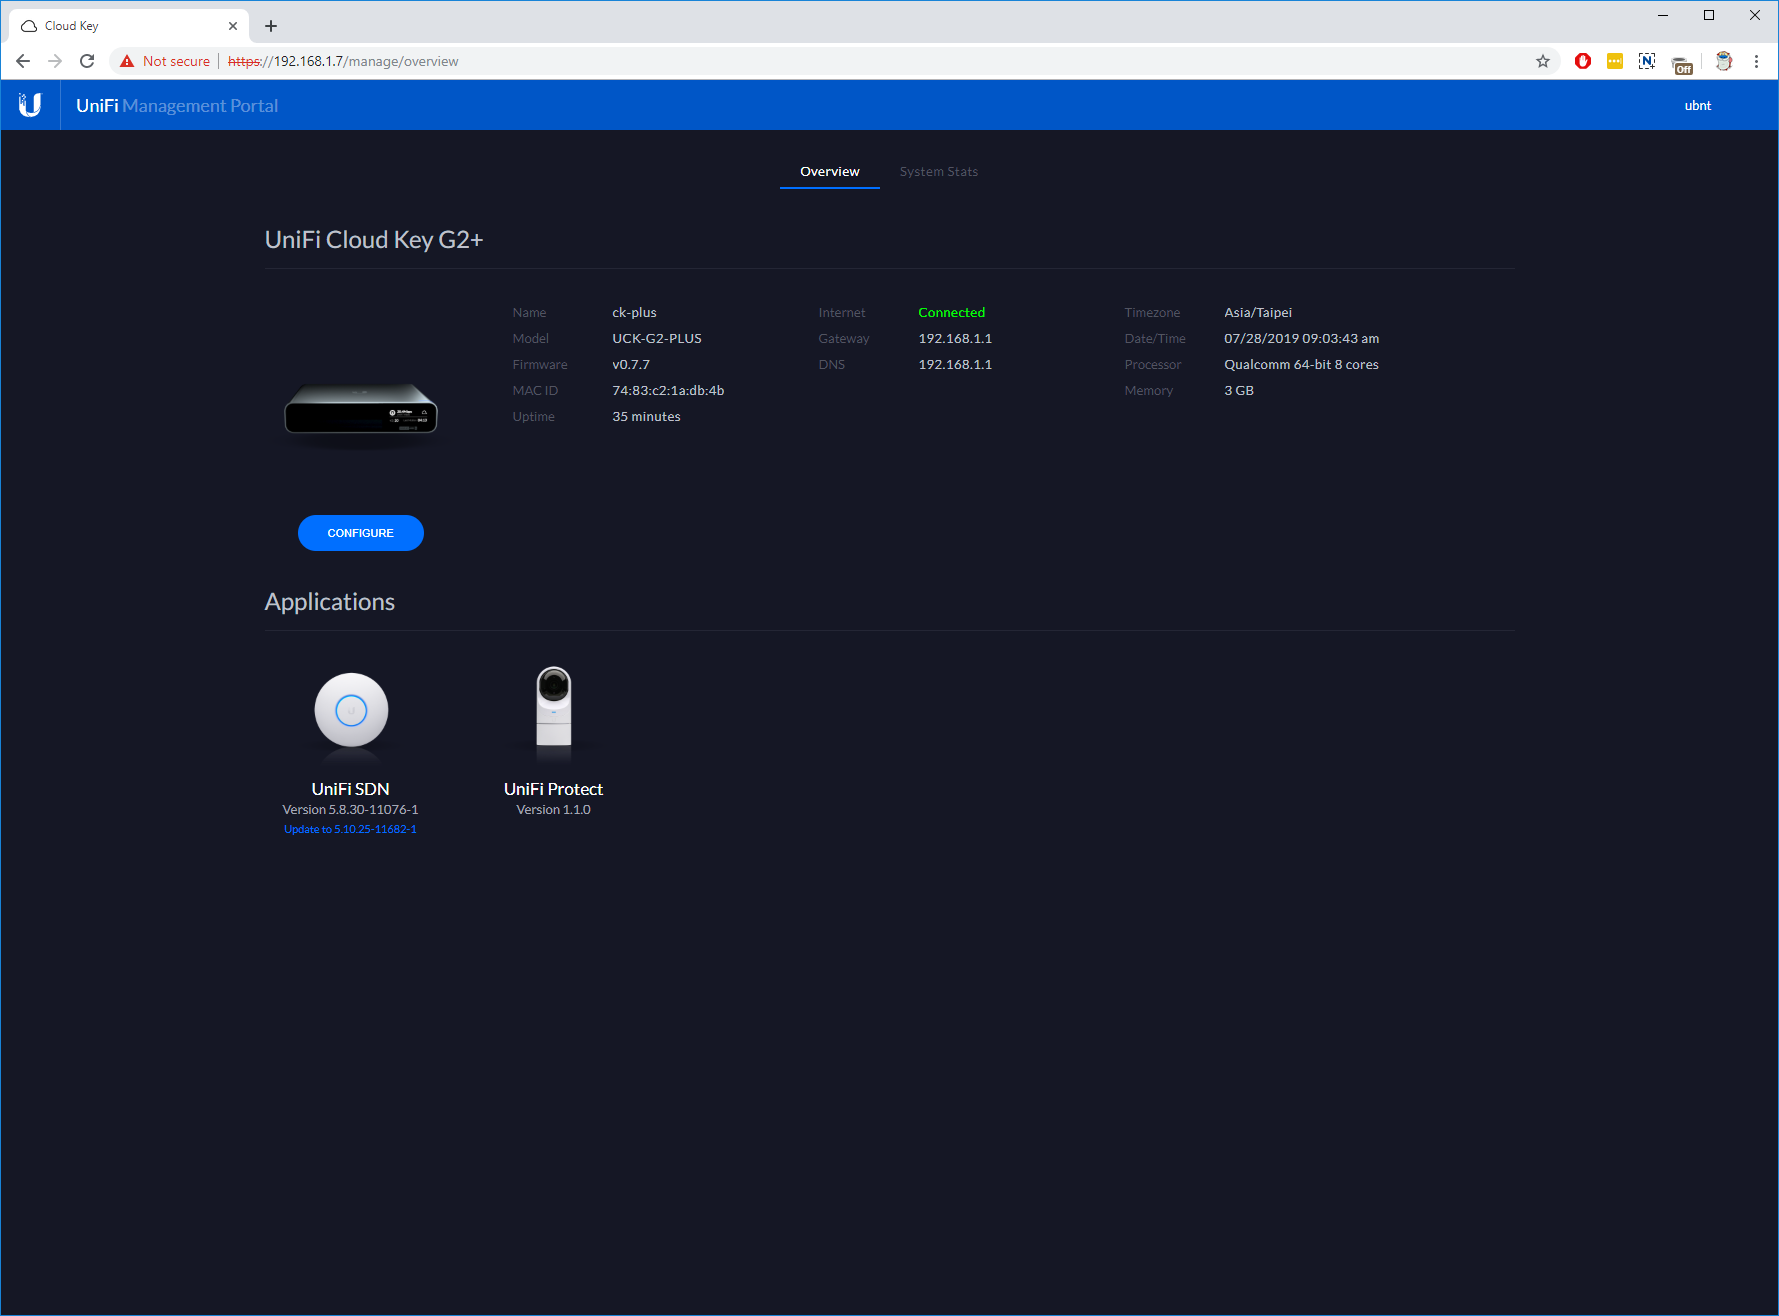 Ubiquiti Unifi Review Part 2 - Is This The Best Networking